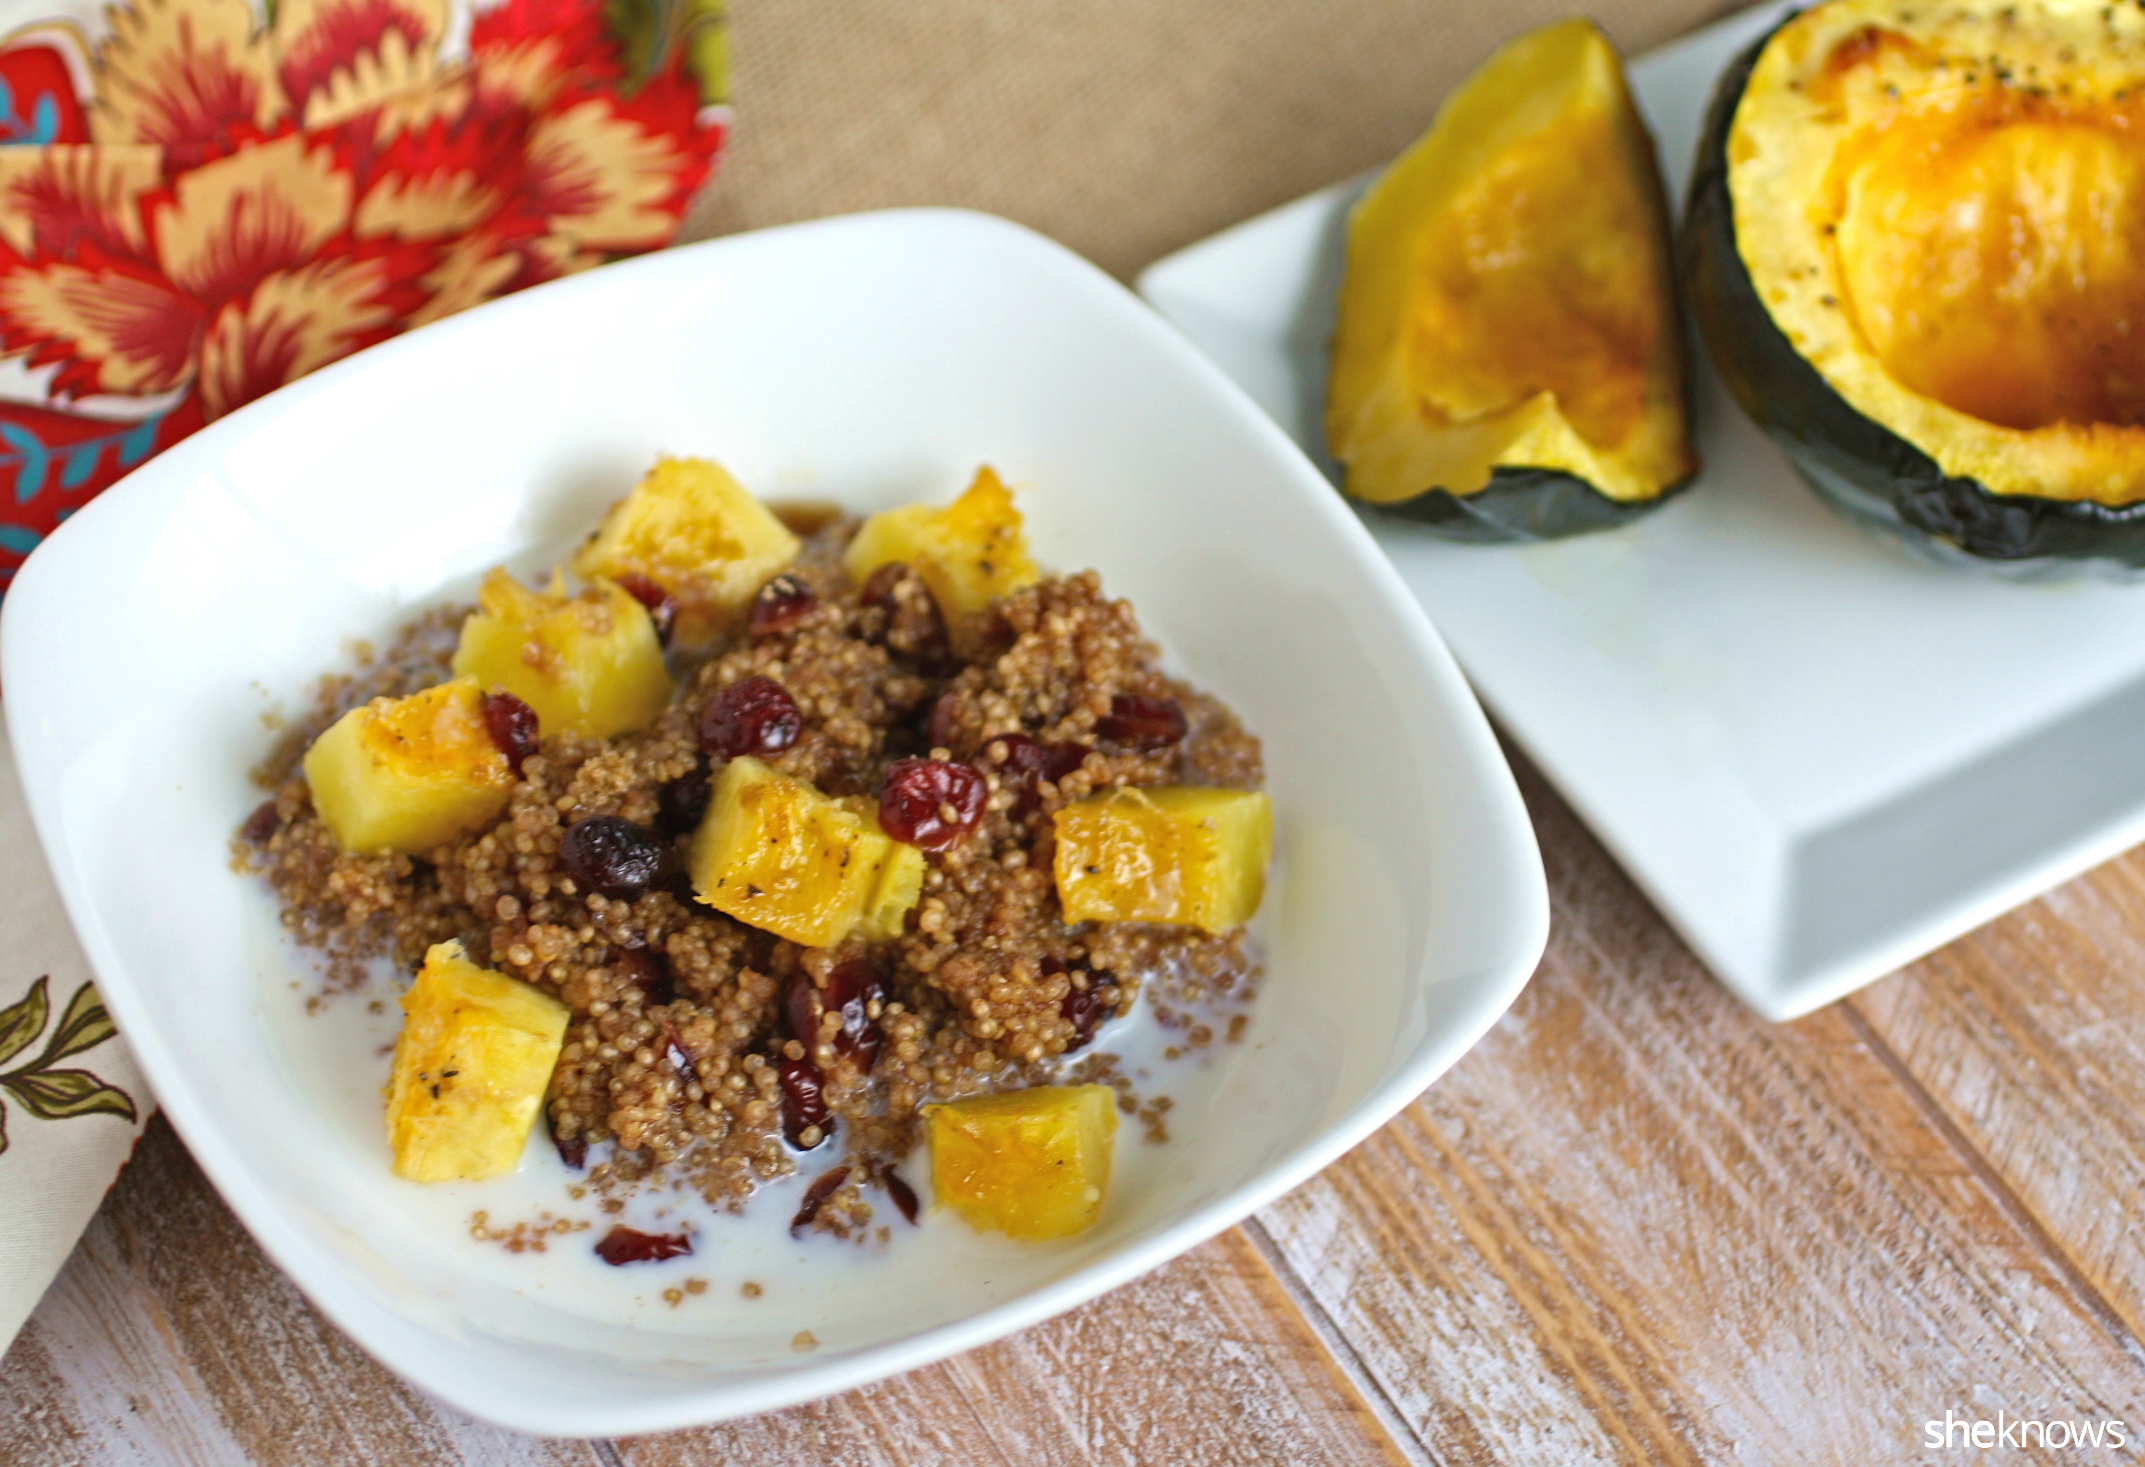 Be sure to enjoy a breakfast like creamy quinoa cinnamon and acorn squash breakfast bowl